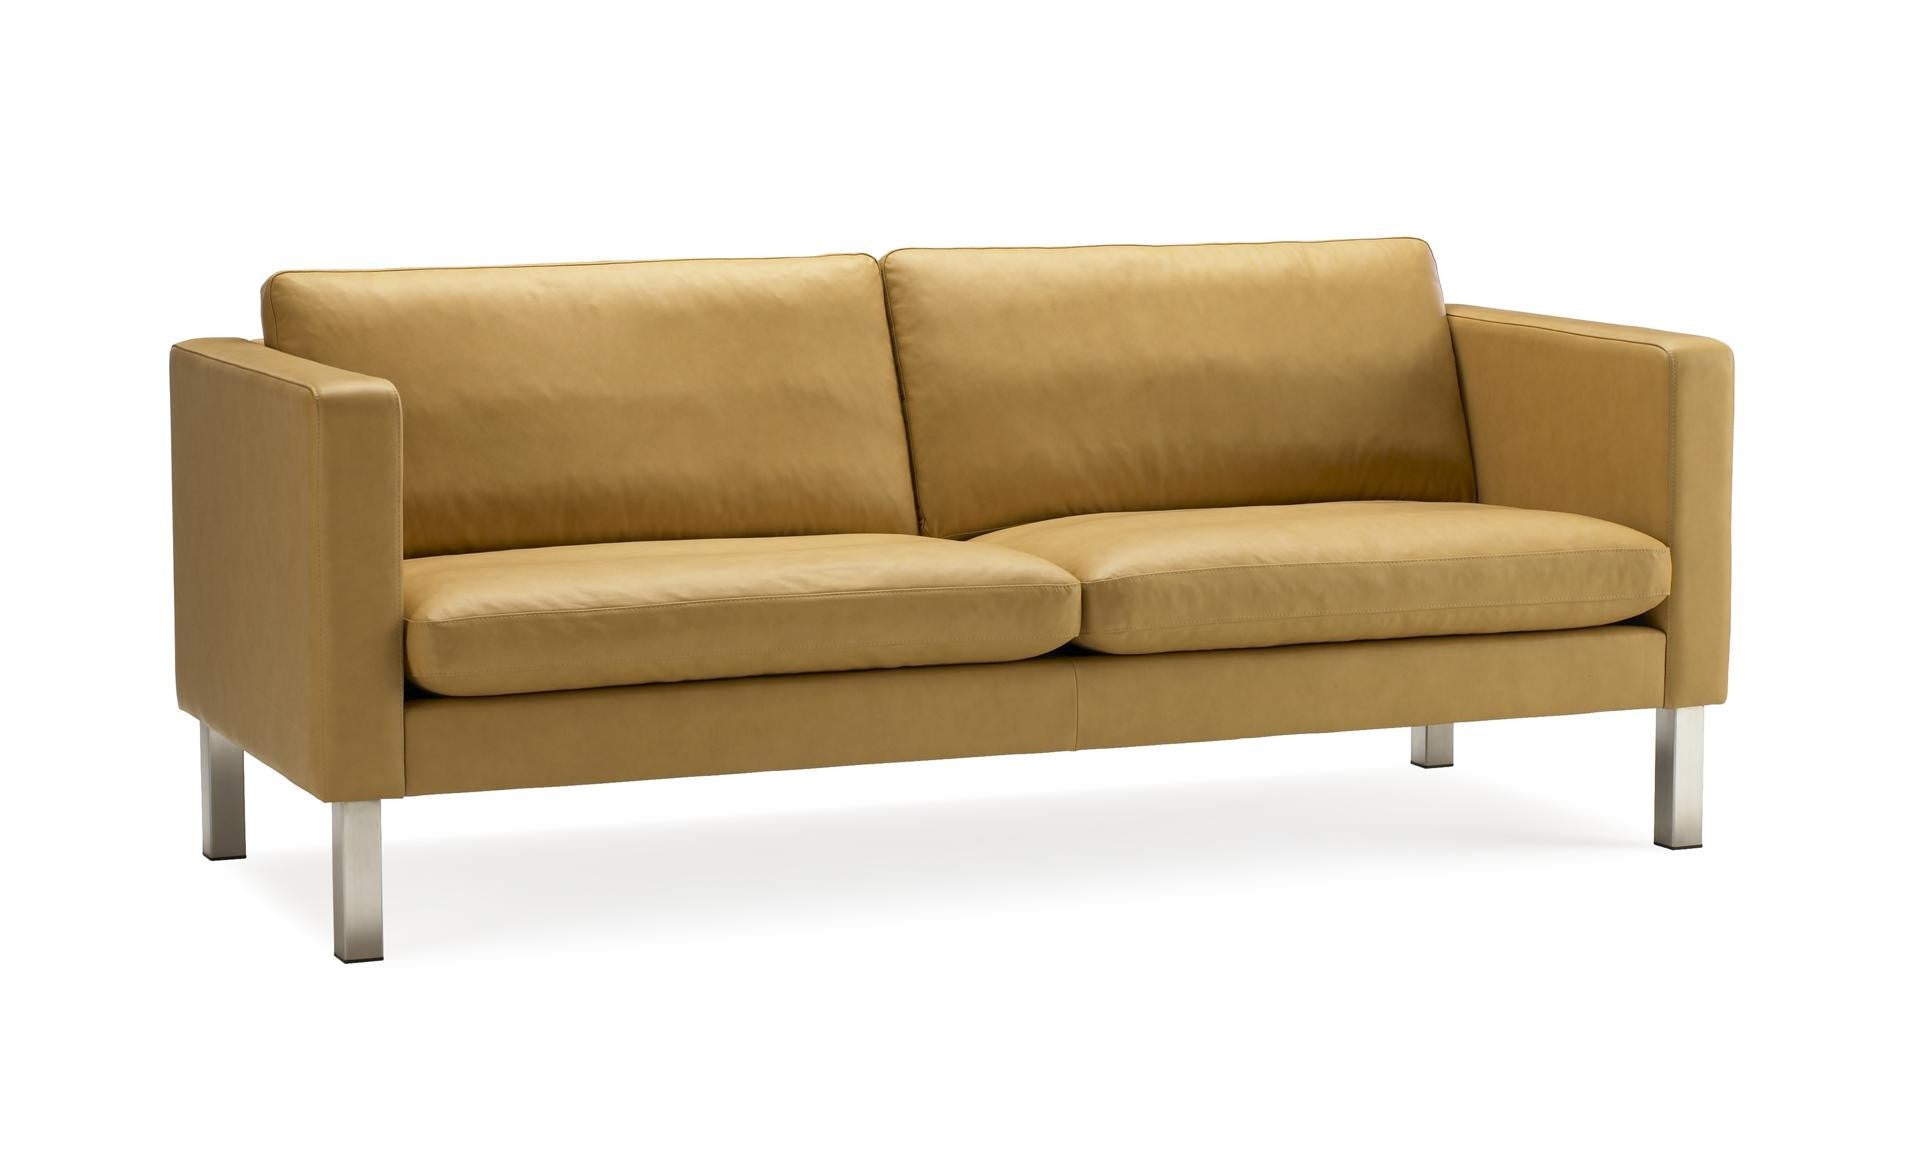 Surprising Sofas Couch Potato Company Download Free Architecture Designs Scobabritishbridgeorg